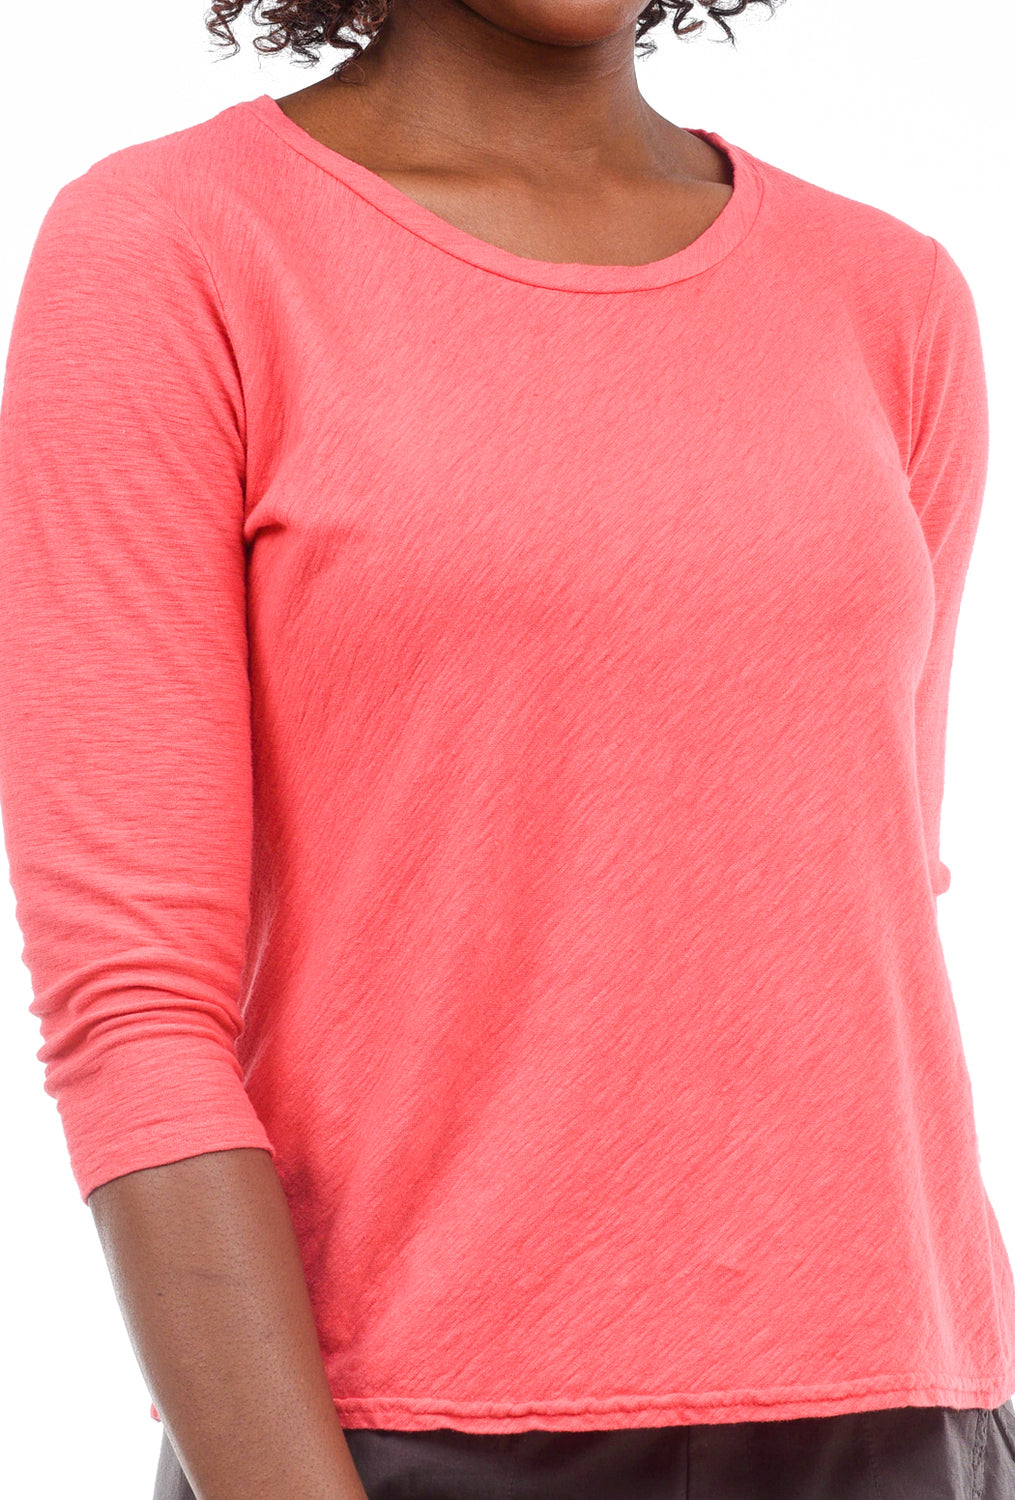 Cut Loose 3/4-Sleeve Bias Tee, Harbor Red